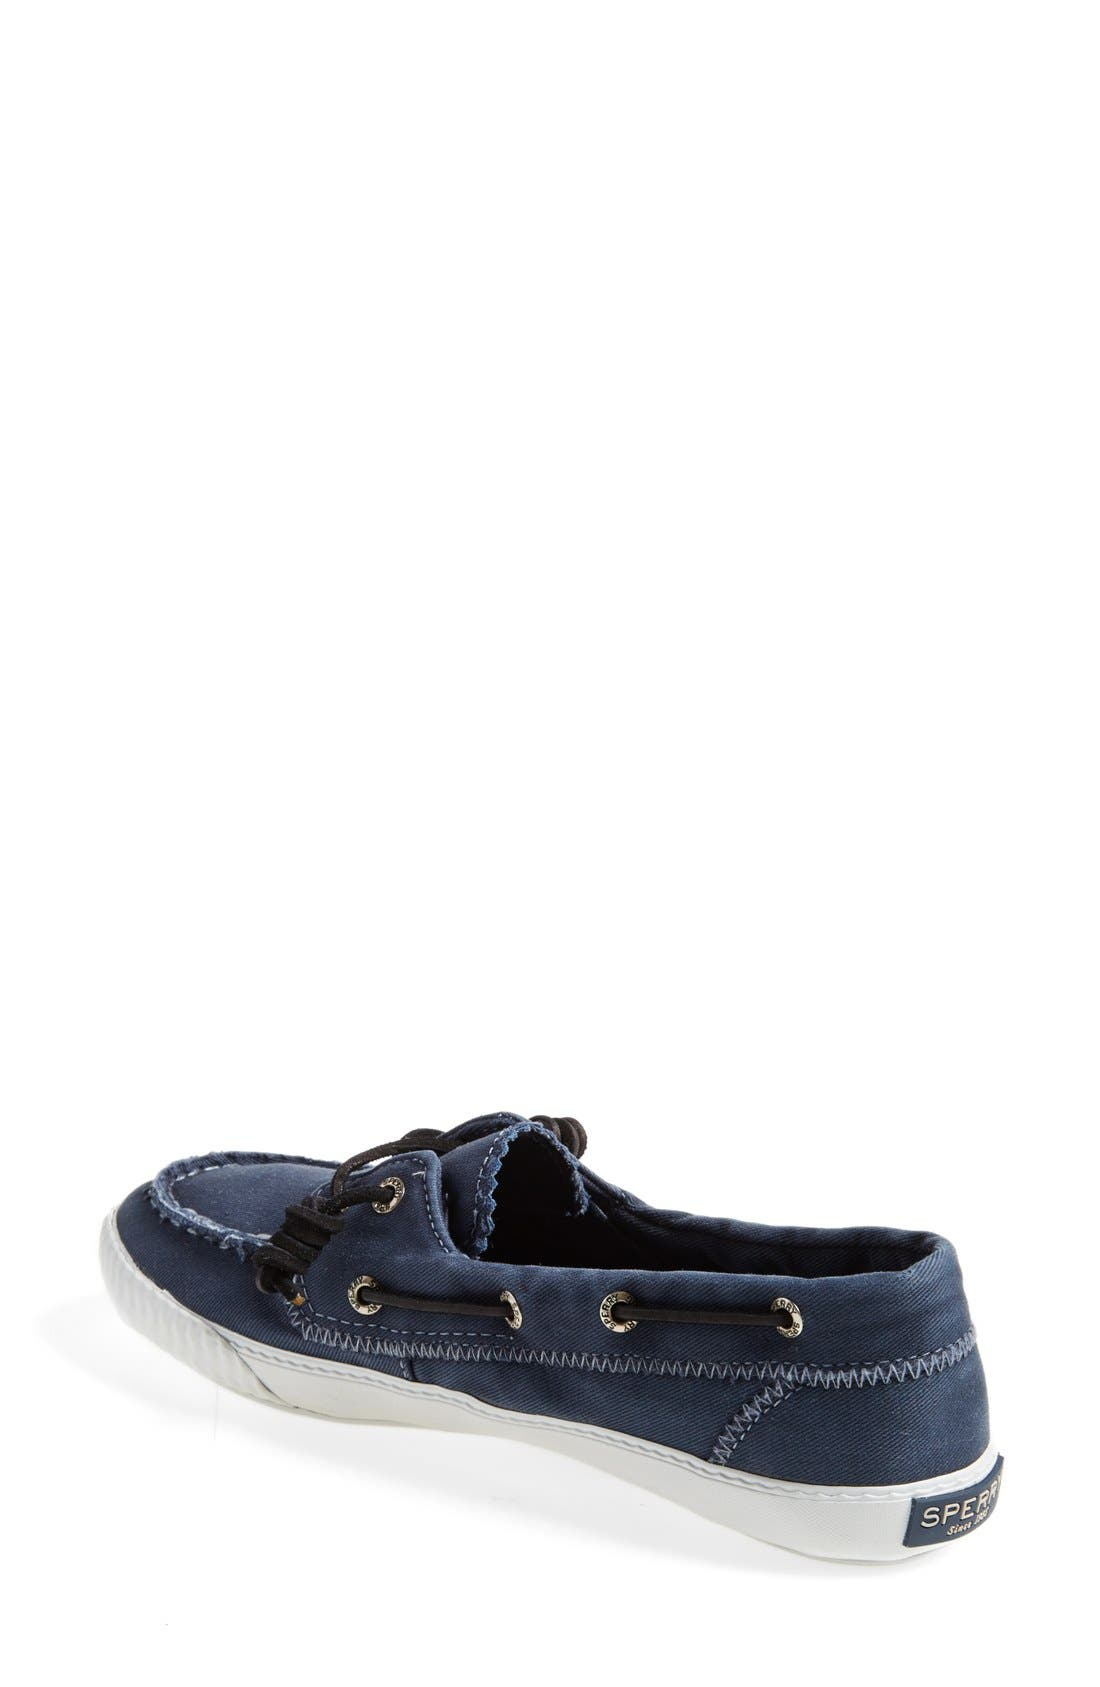 Paul Sperry 'Sayel Away' Sneaker,                             Alternate thumbnail 2, color,                             Navy